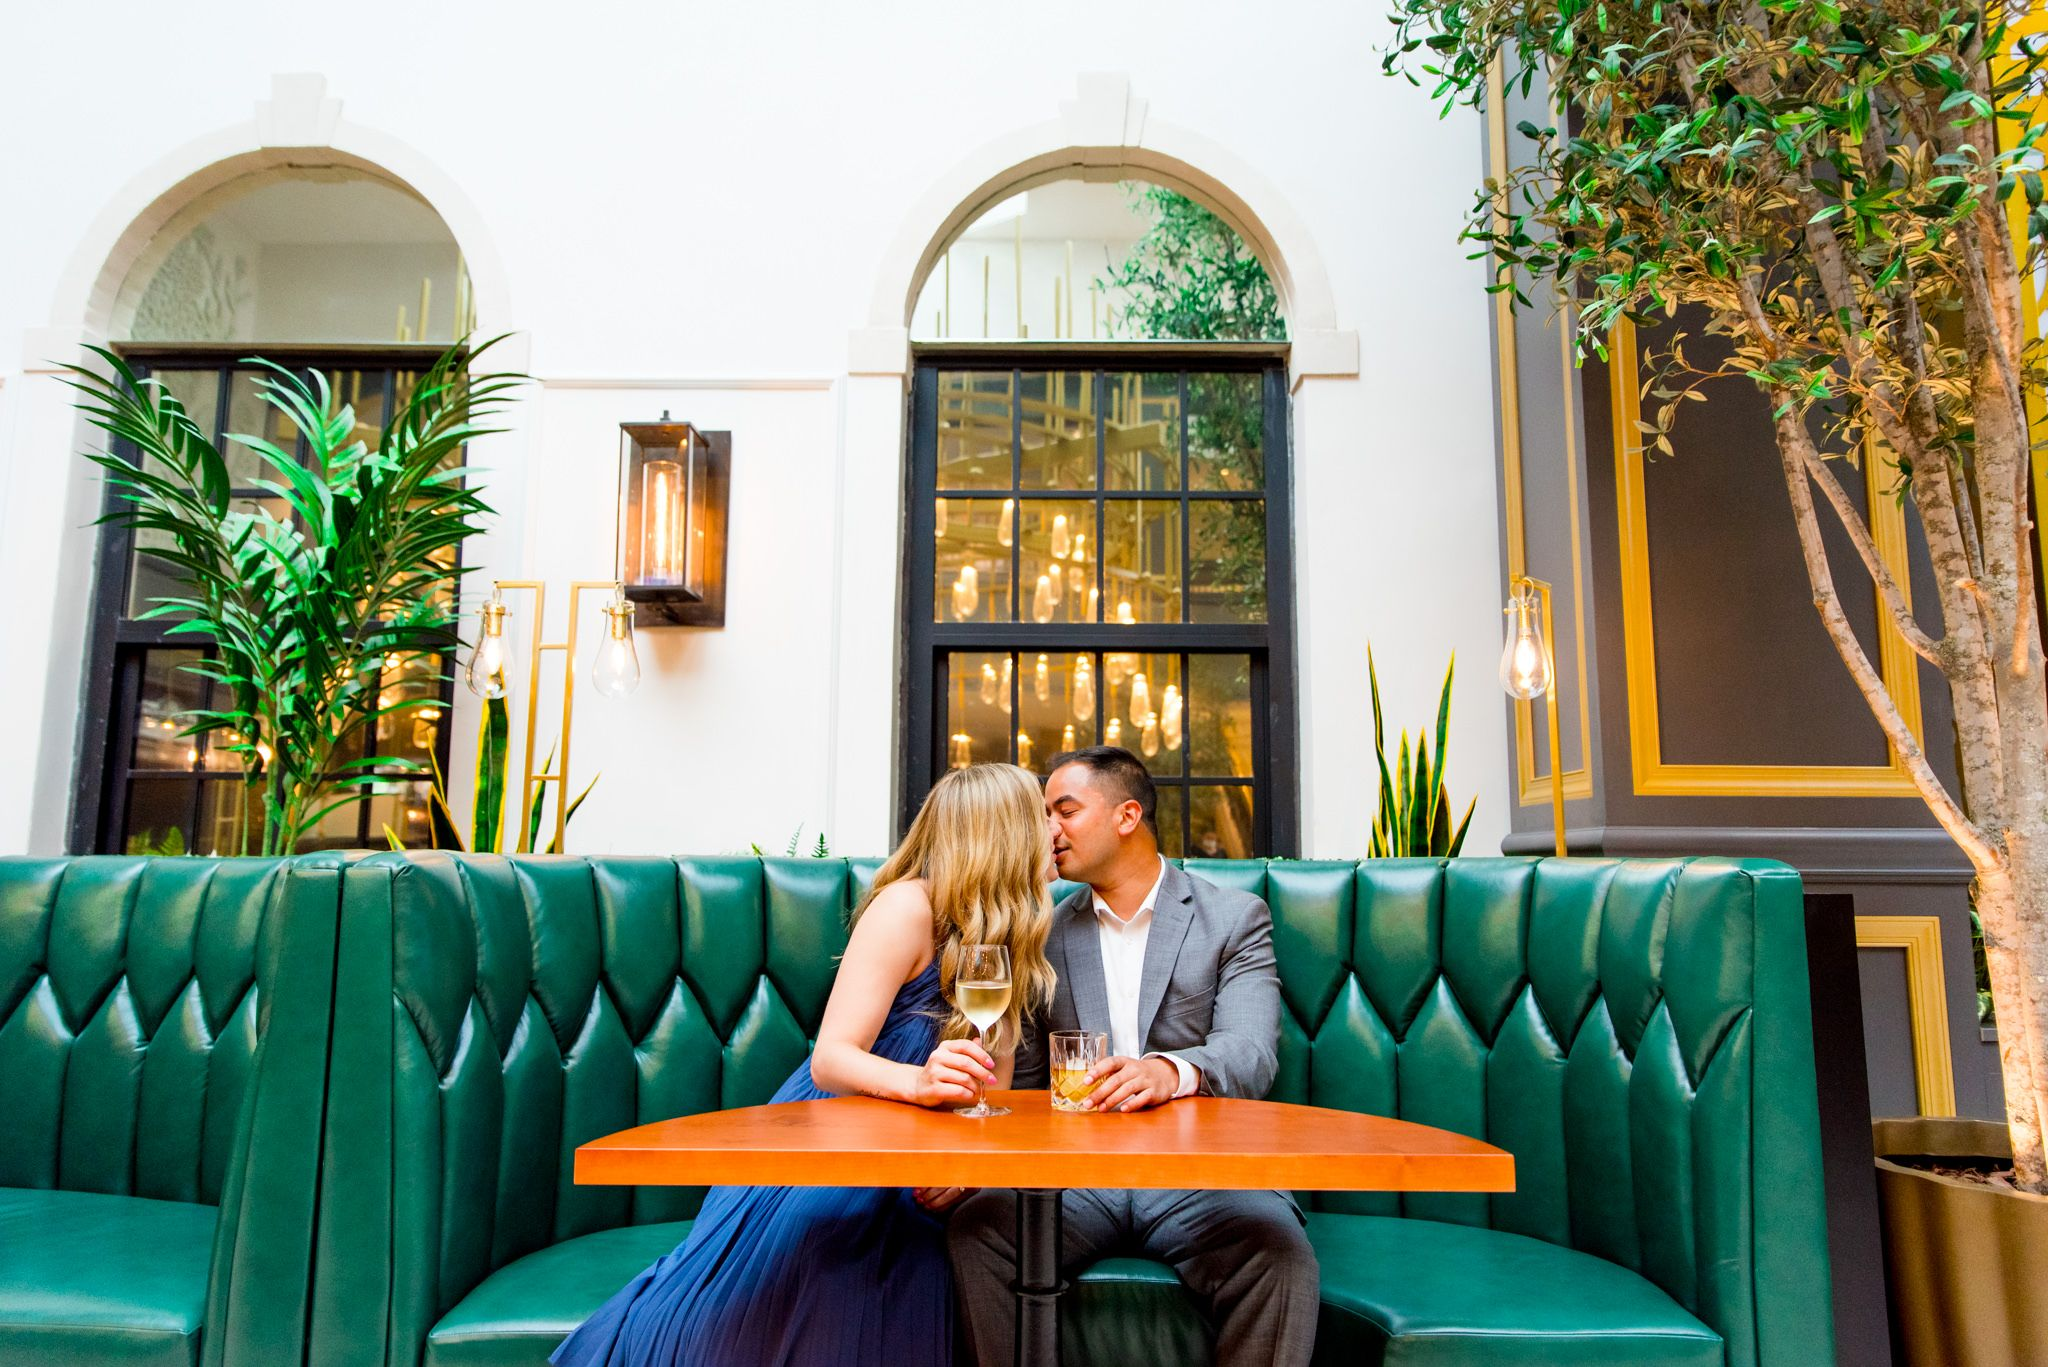 man in grey suit and woman in blue dress holding a glass of white wine kiss in green booth at Lytle Park Hotel